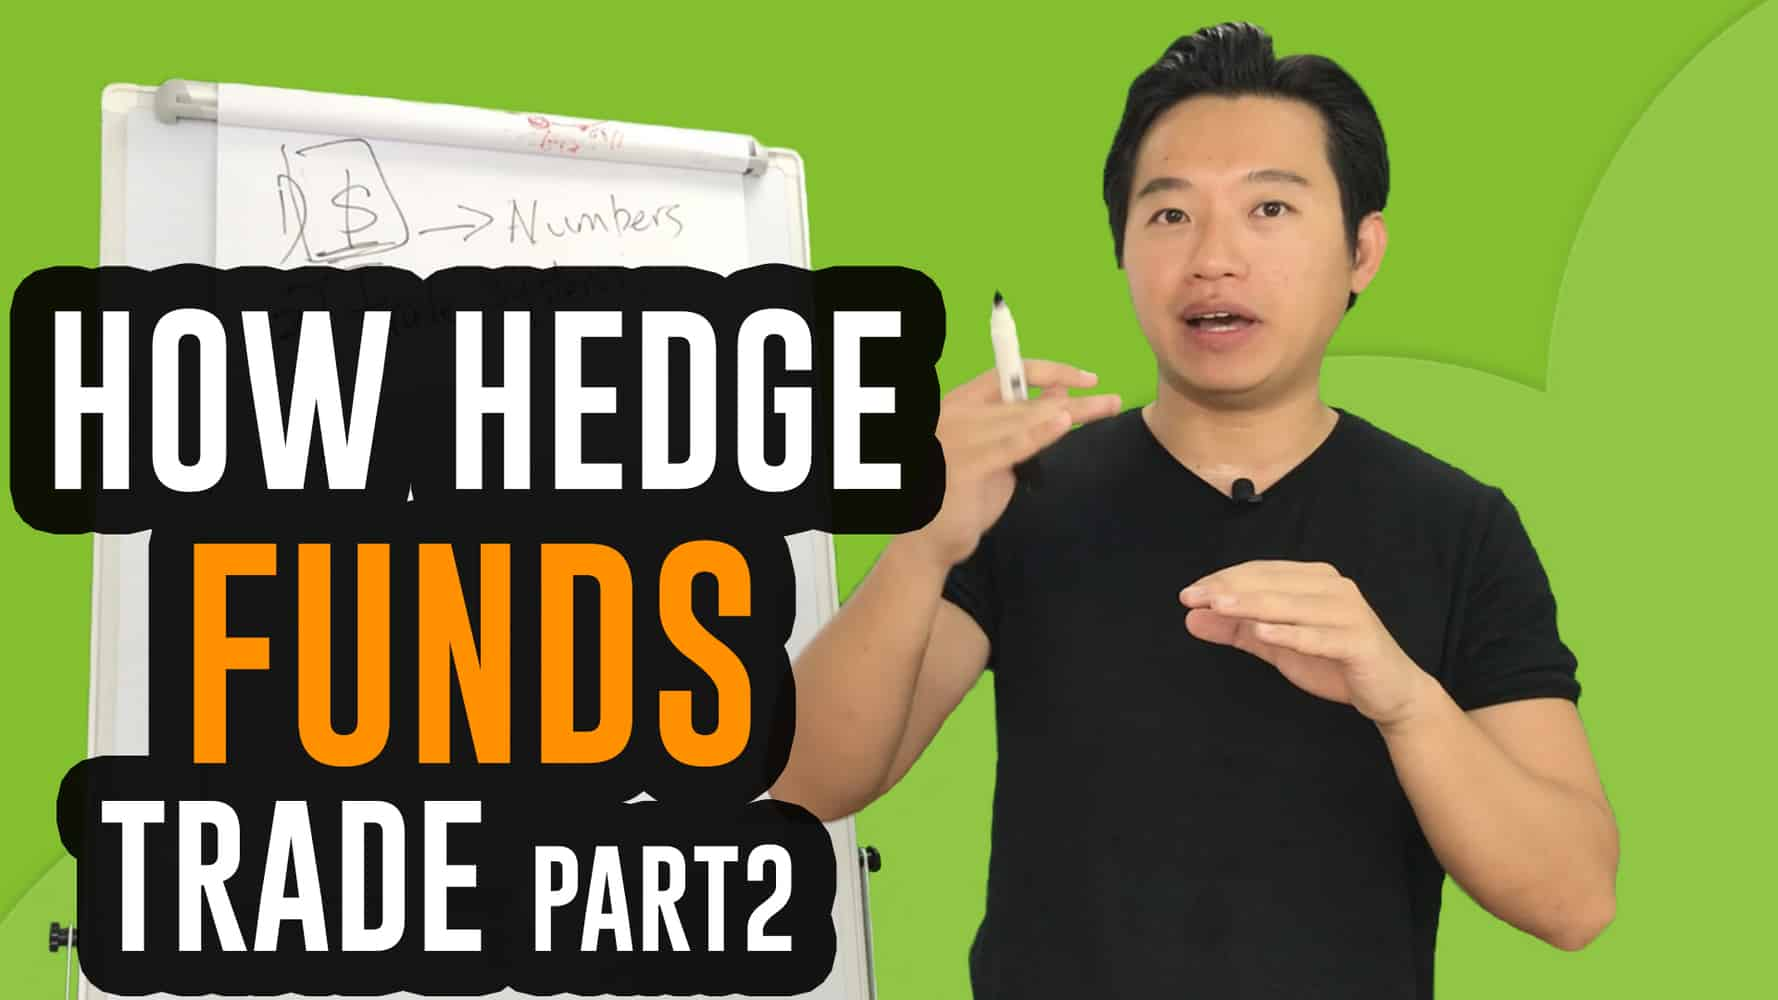 How to Trade Forex like a Hedge Fund (Ezekiel Chew) *Part 2